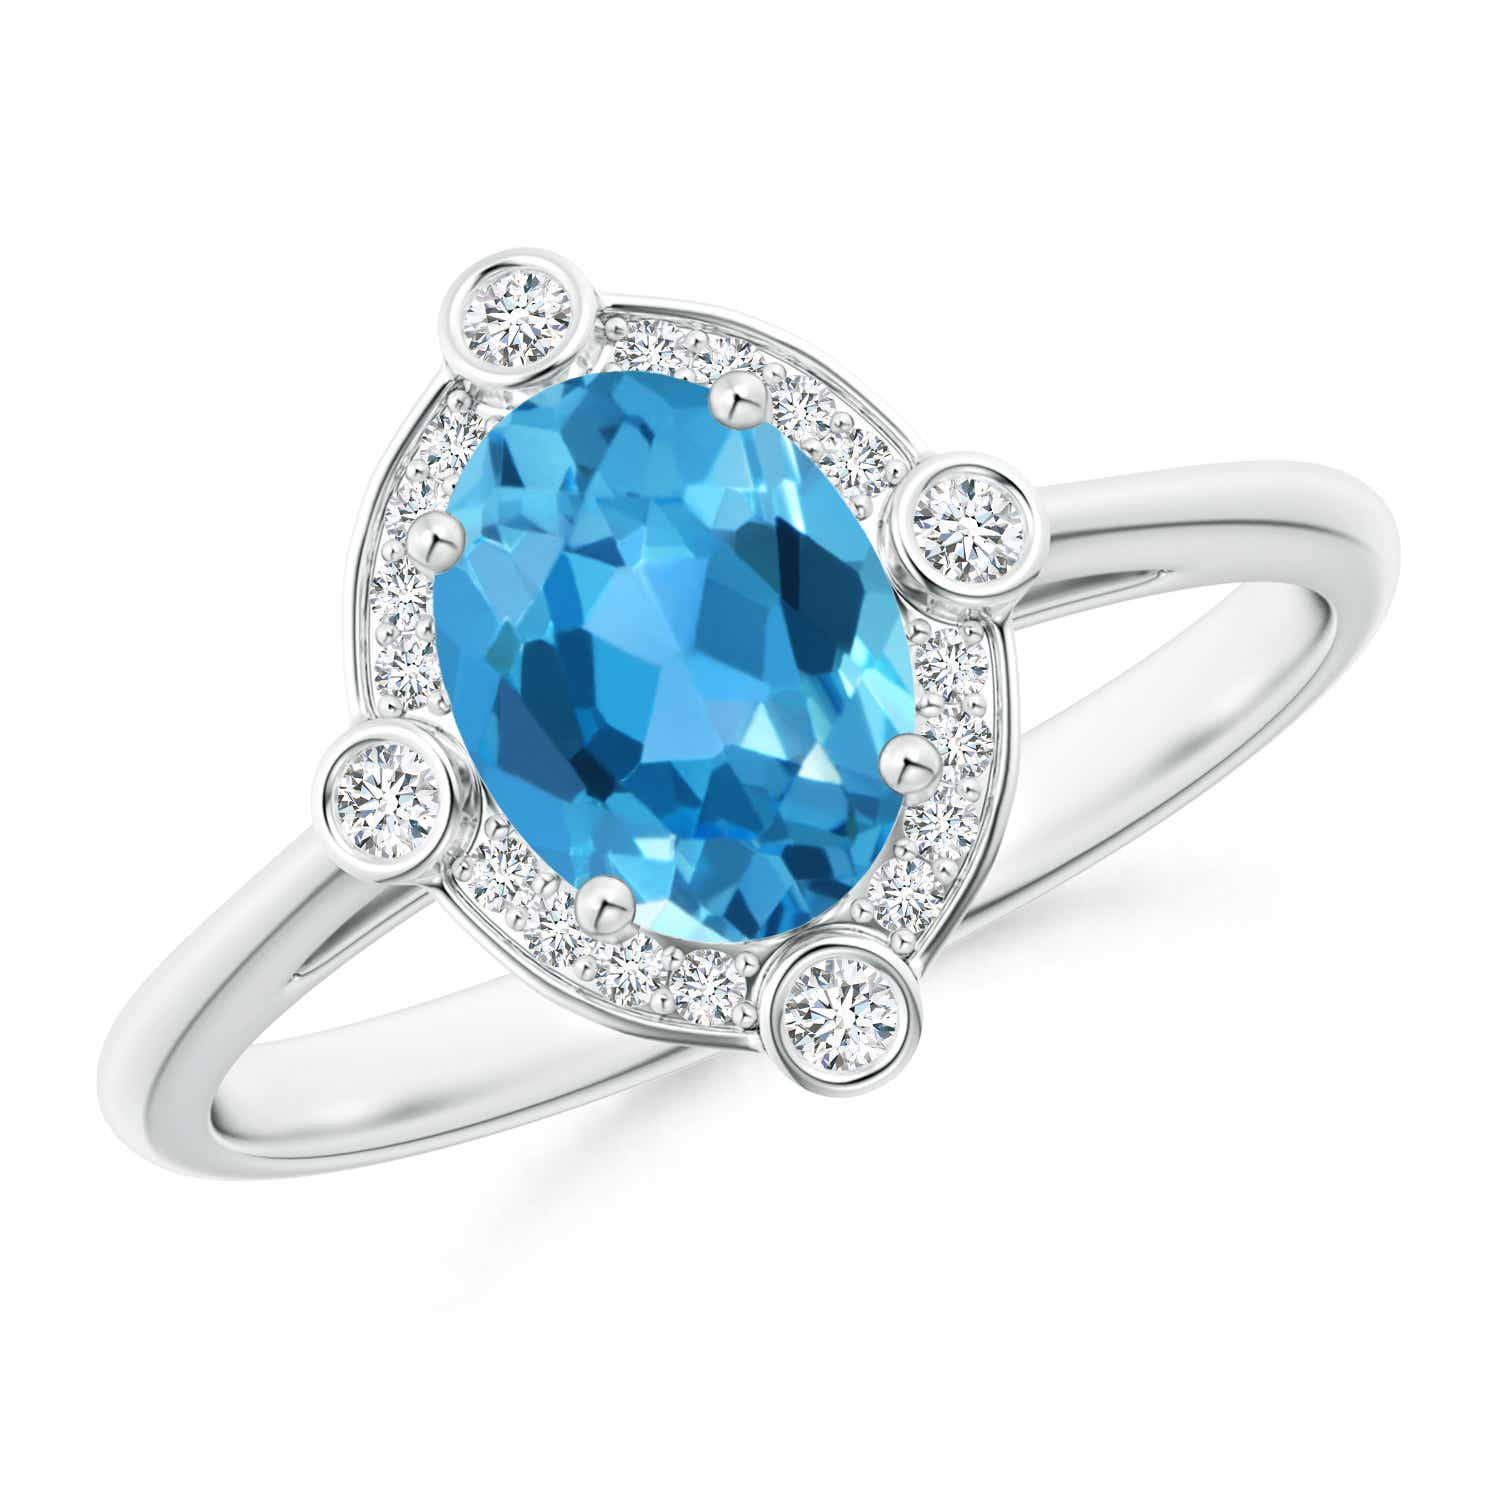 Angara Classic Prong Set Solitaire Oval Swiss Blue Topaz Cocktail Ring qsSW4hQvg